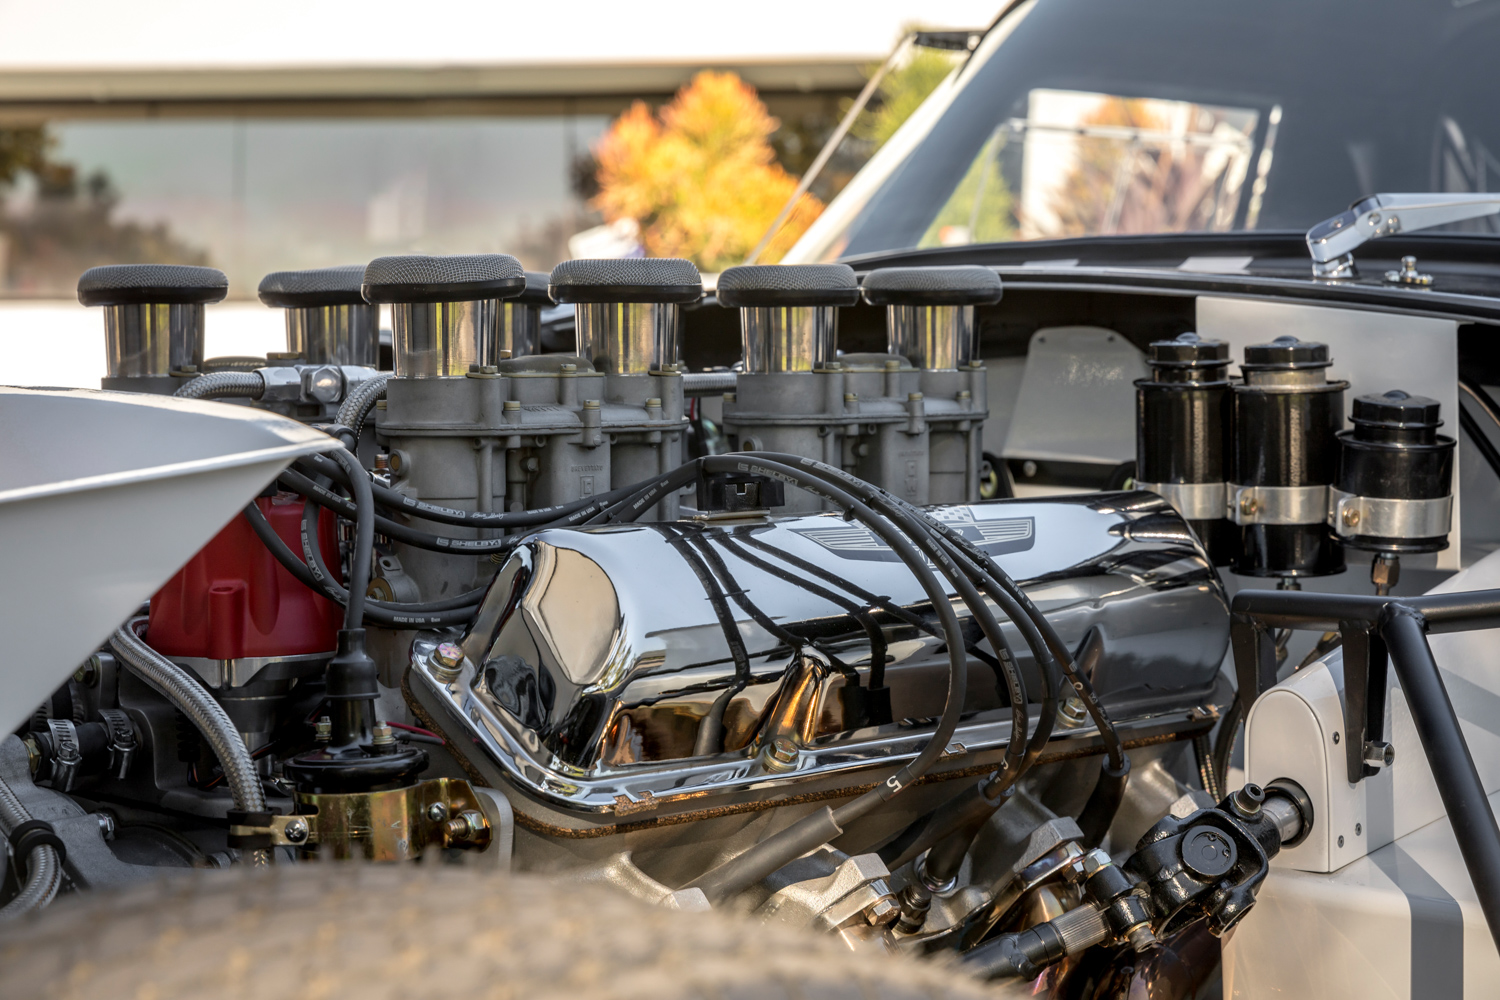 1964 Shelby Daytona Coupe replica engine carbs